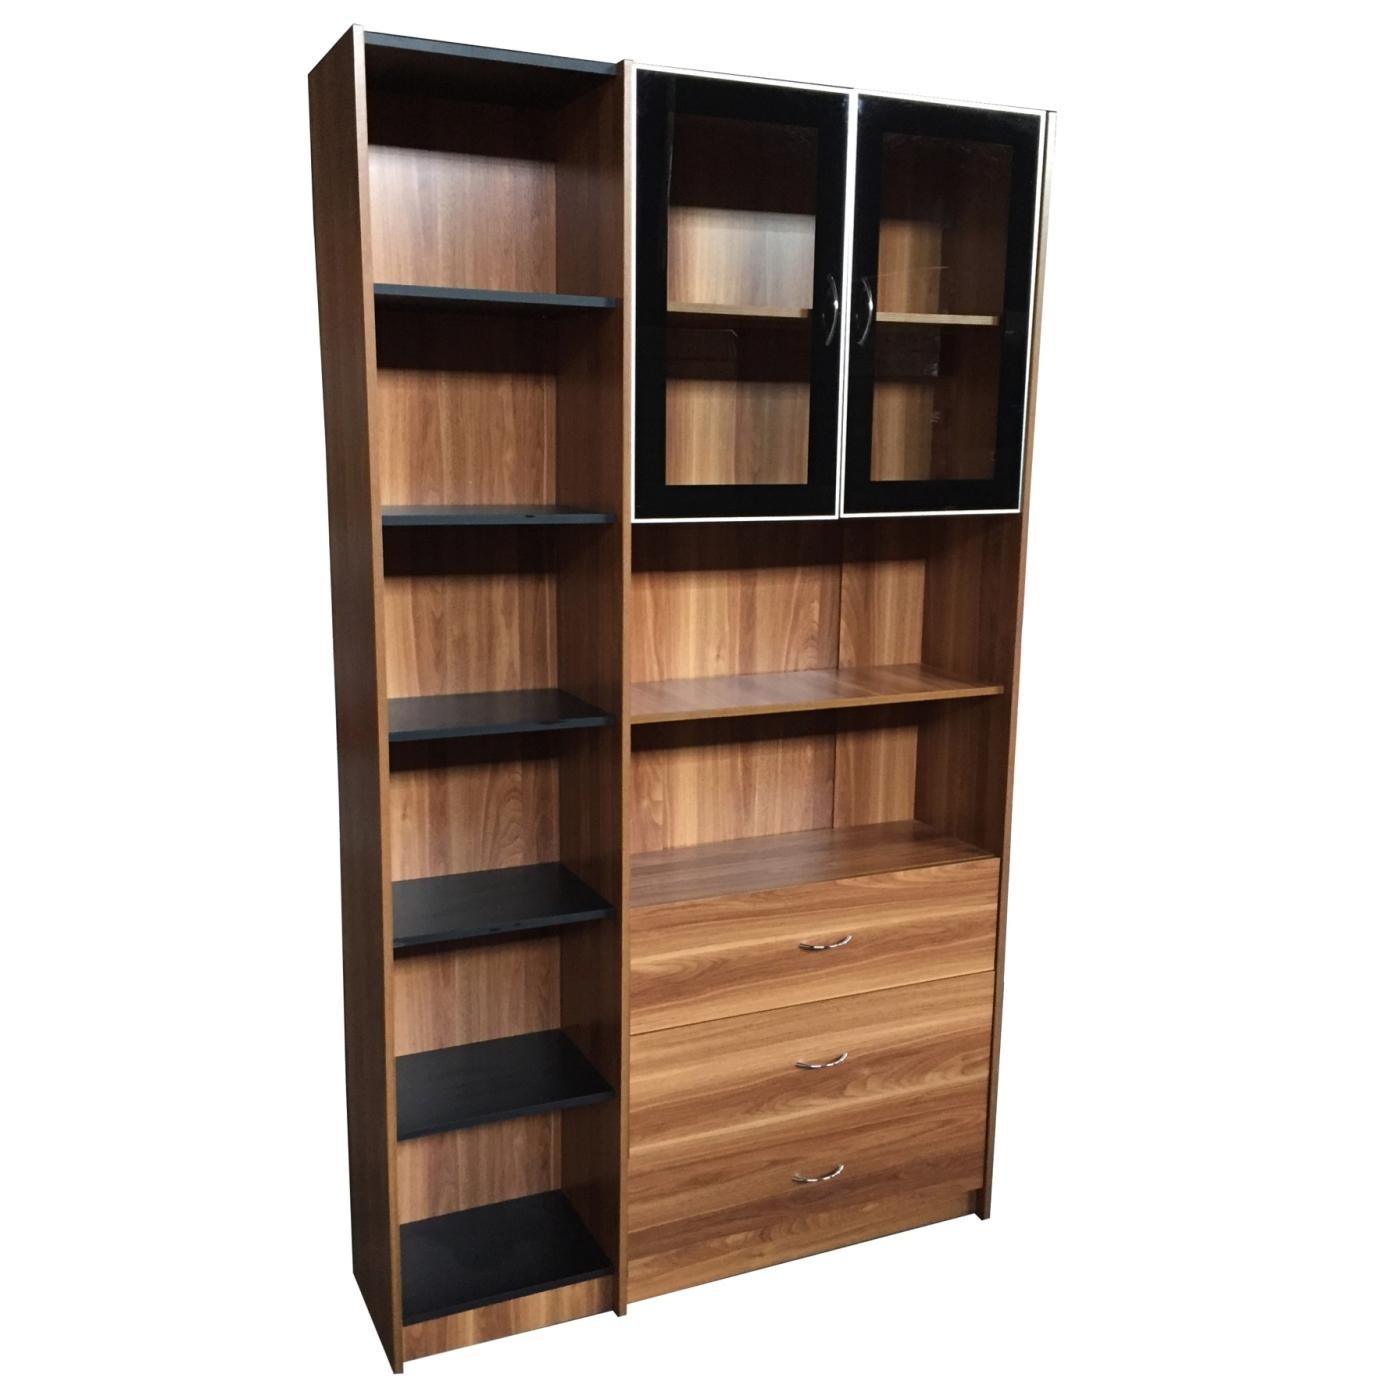 Hb Philippines Vs 48 Display Cabinet Display Shelf